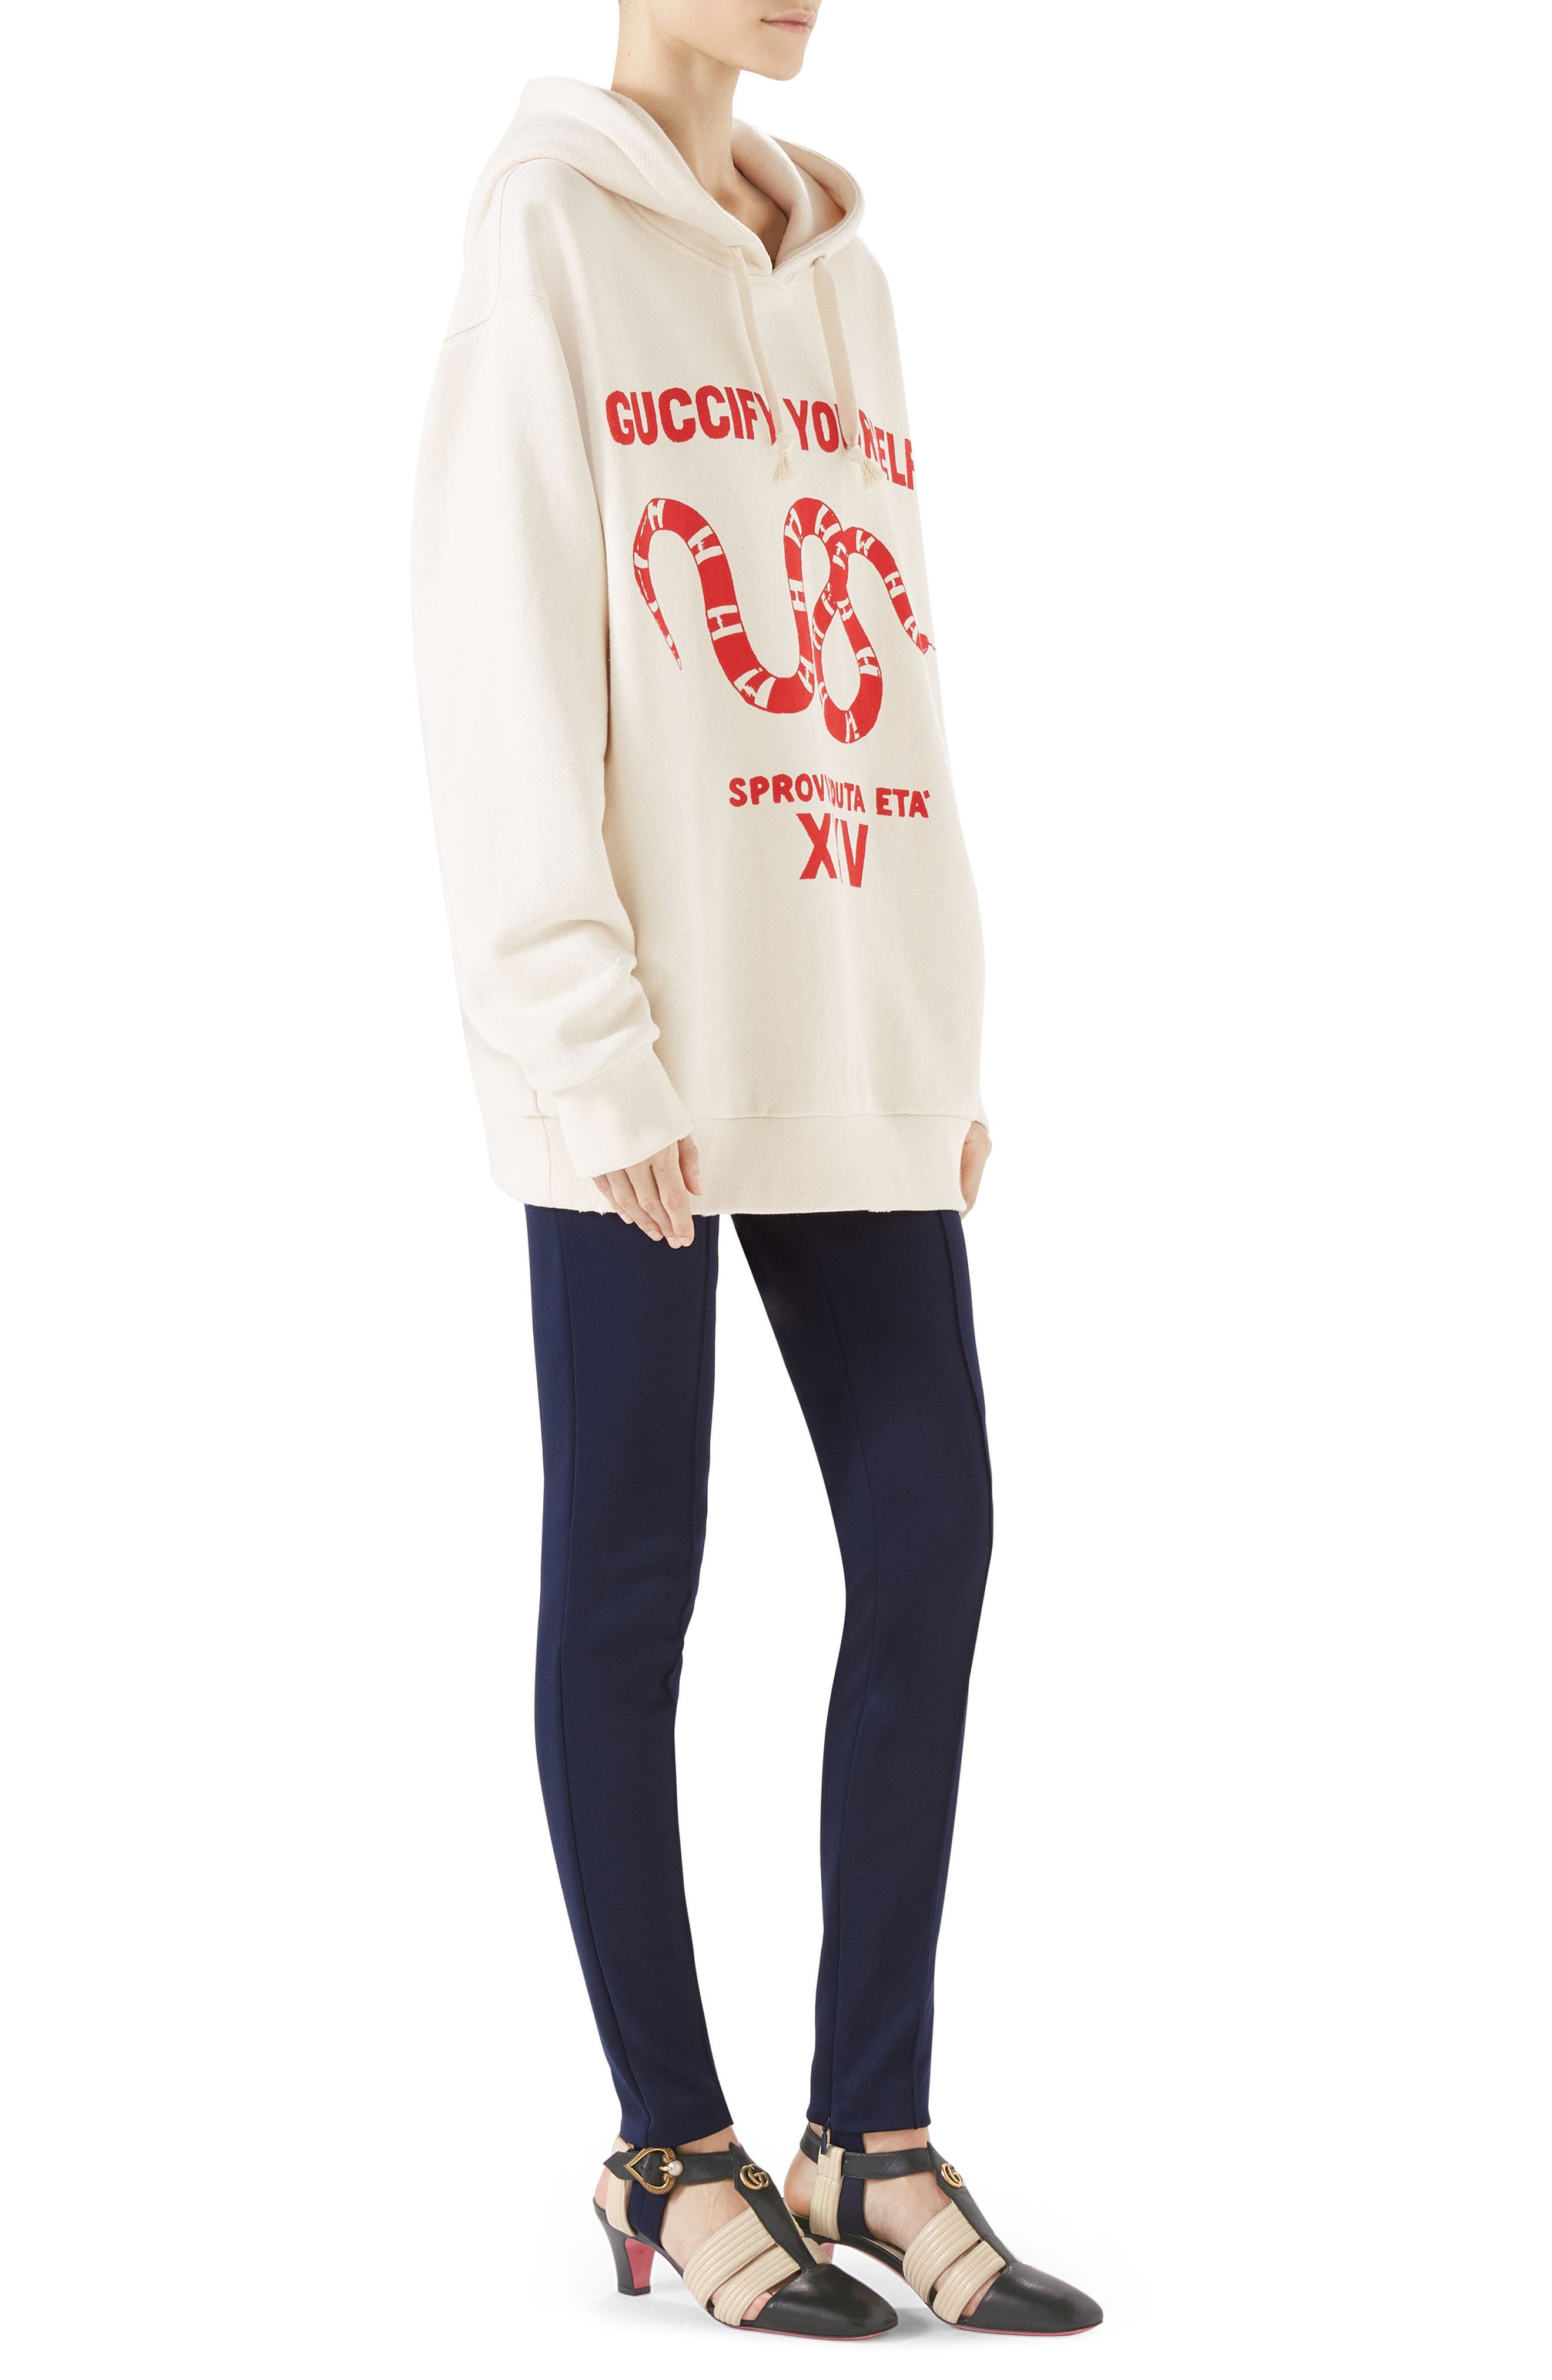 Guccify Yourself Snake Print Hooded Sweatshirt,                             Alternate thumbnail 3, color,                             973